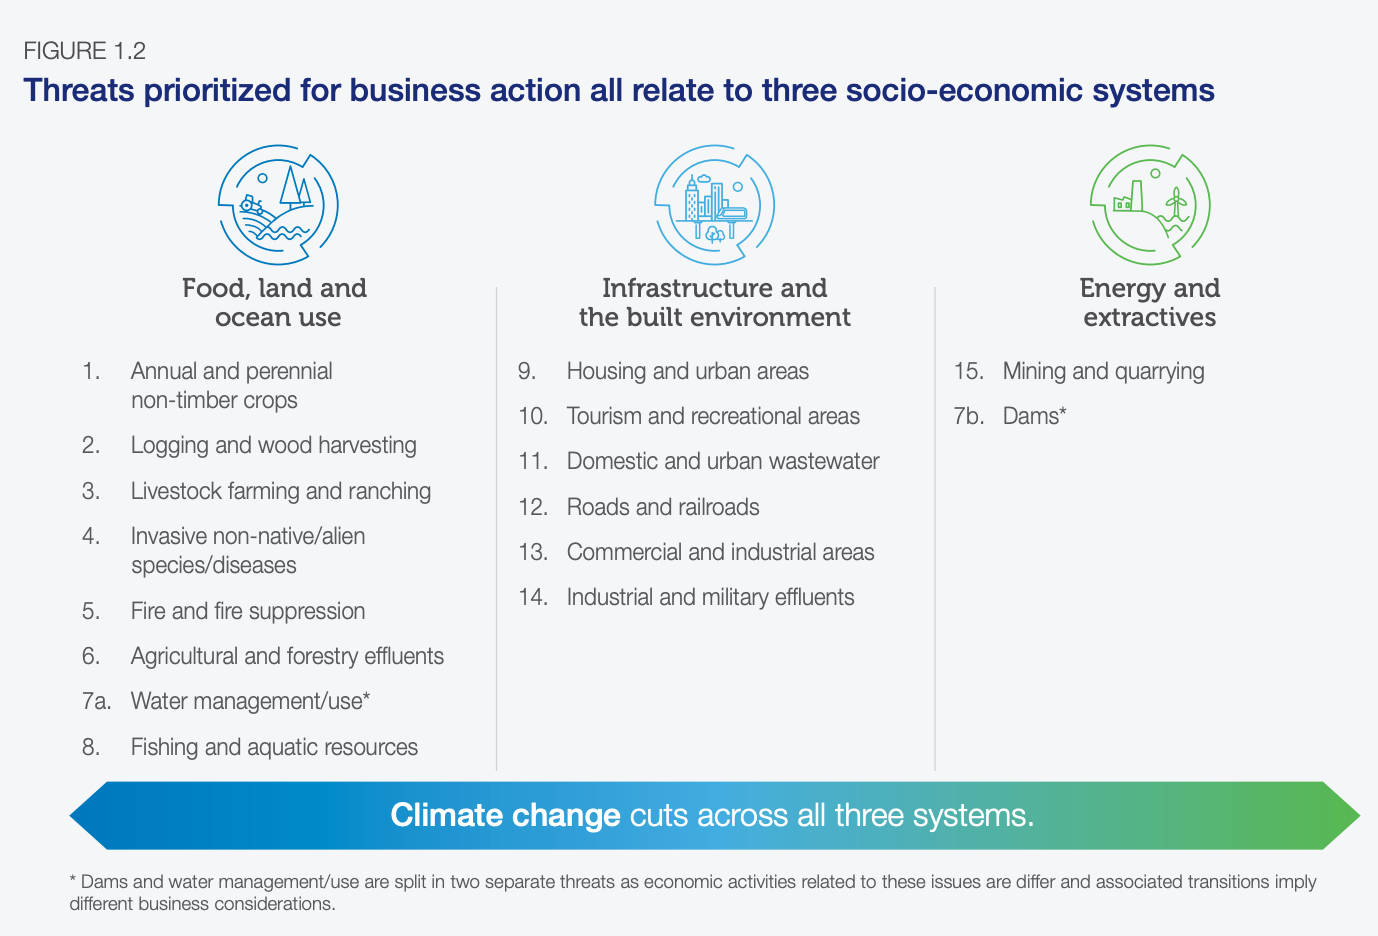 Threats prioritized for business action all relate to three socio-economic systems